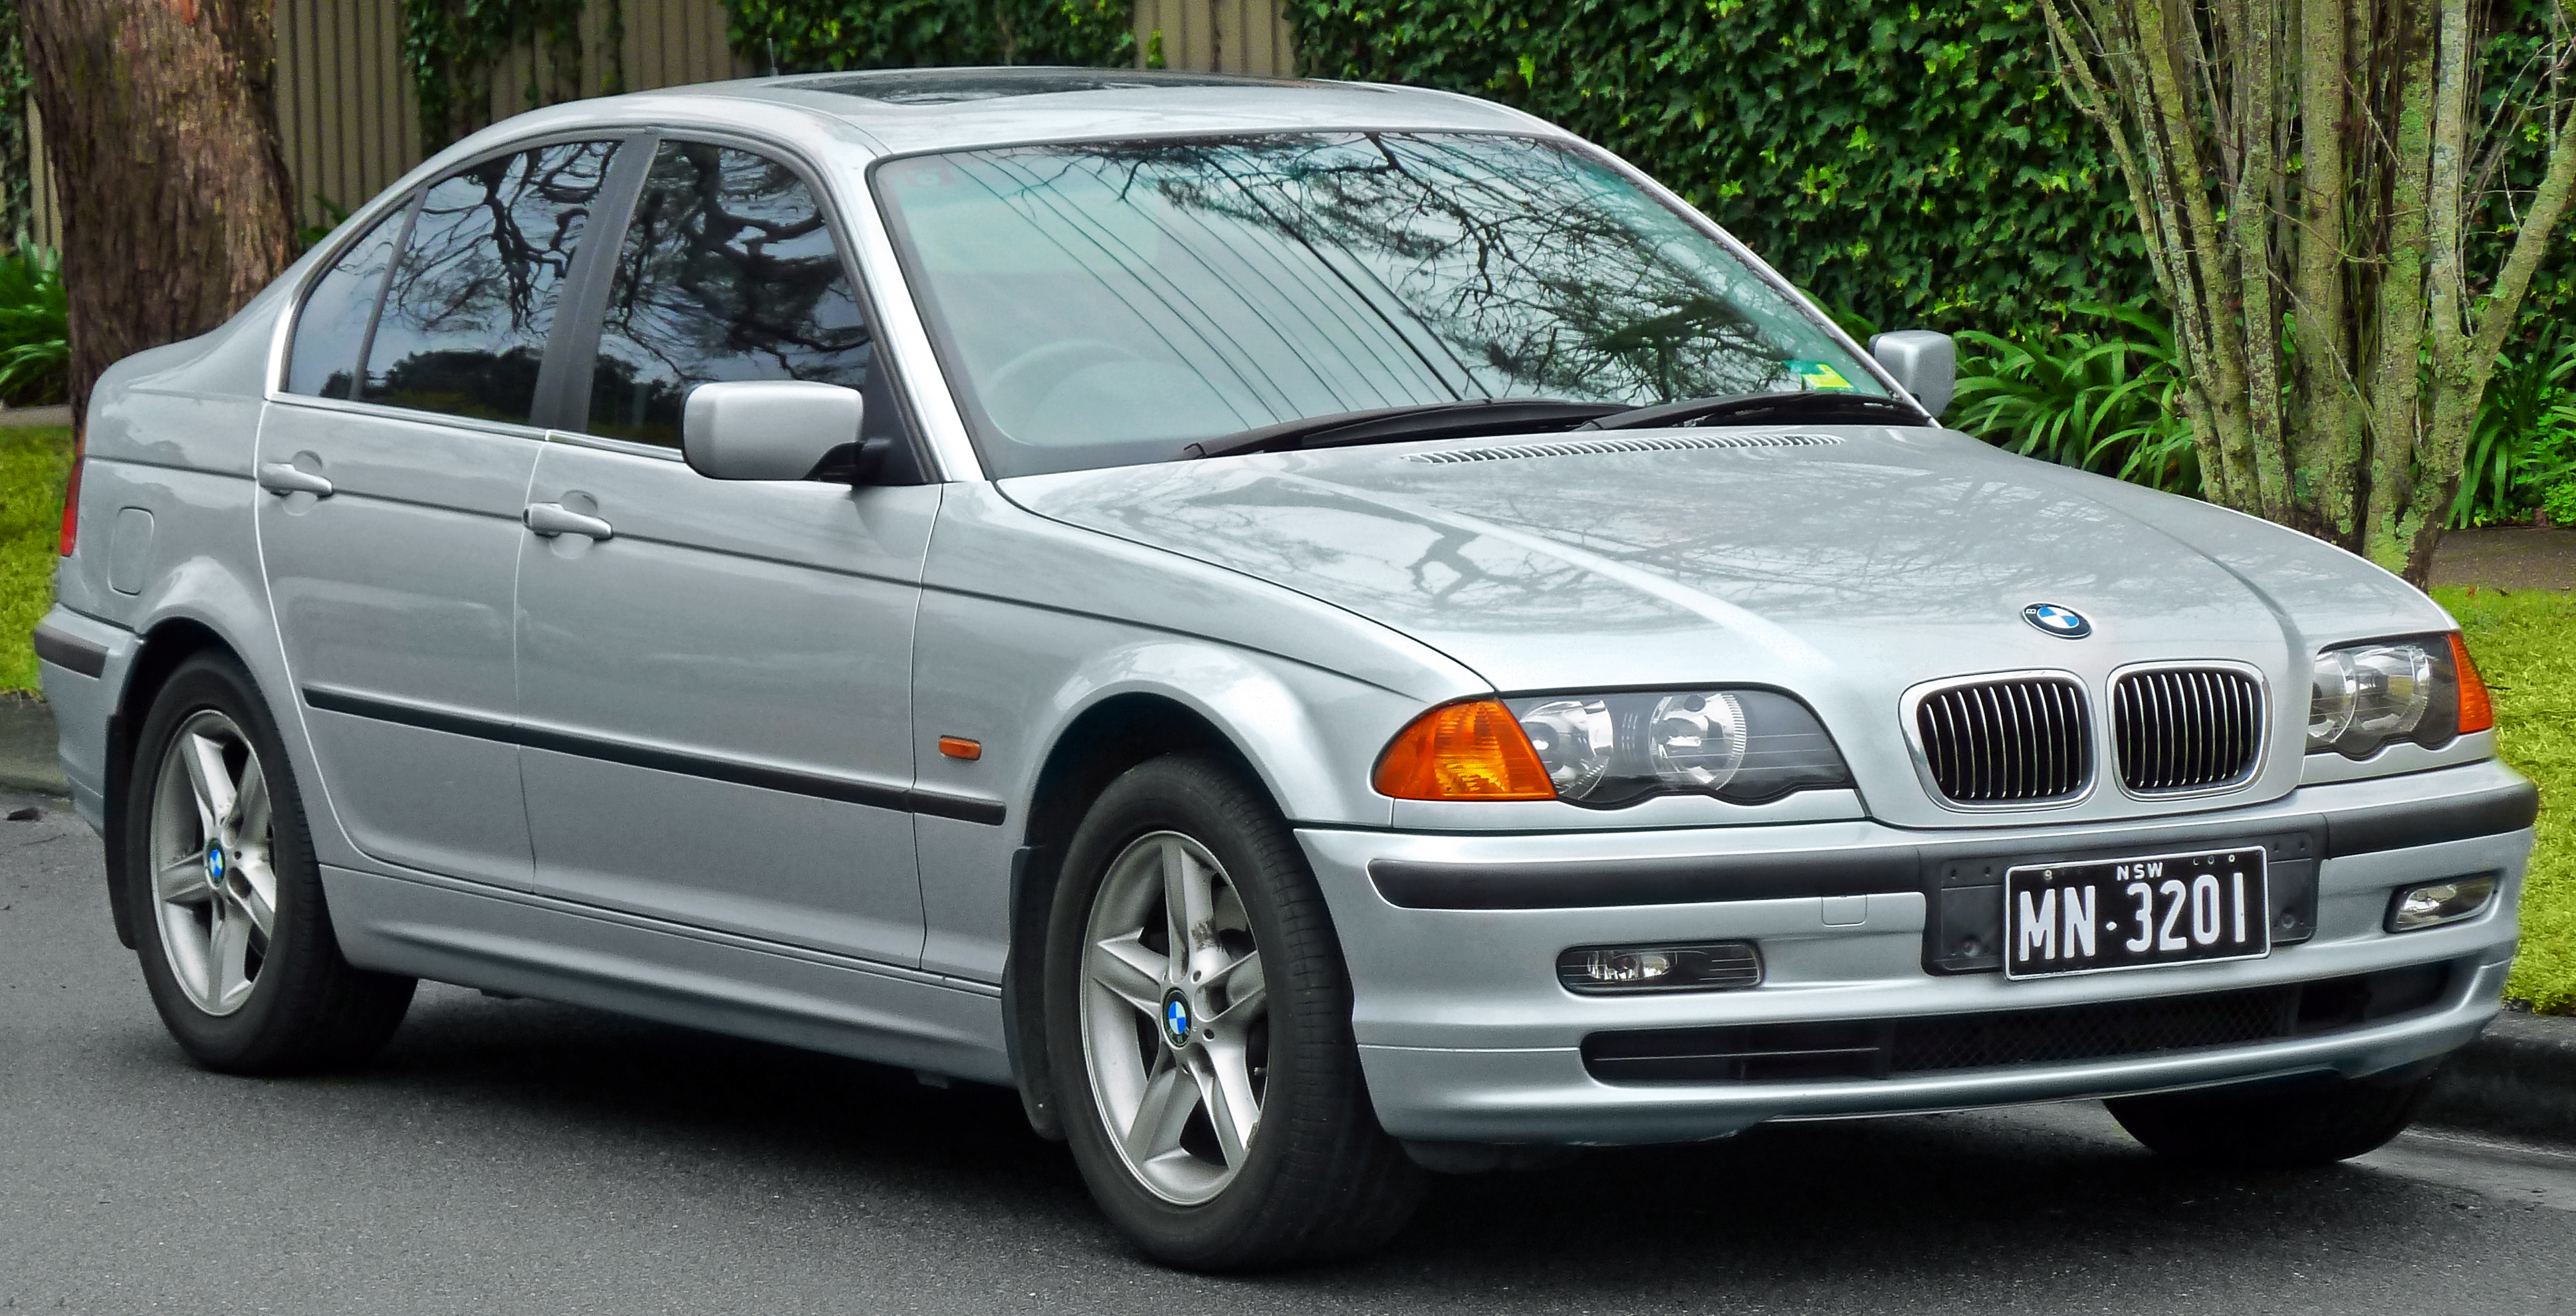 Description 1998 2001 bmw 328i e46 sedan 2011 07 17 01